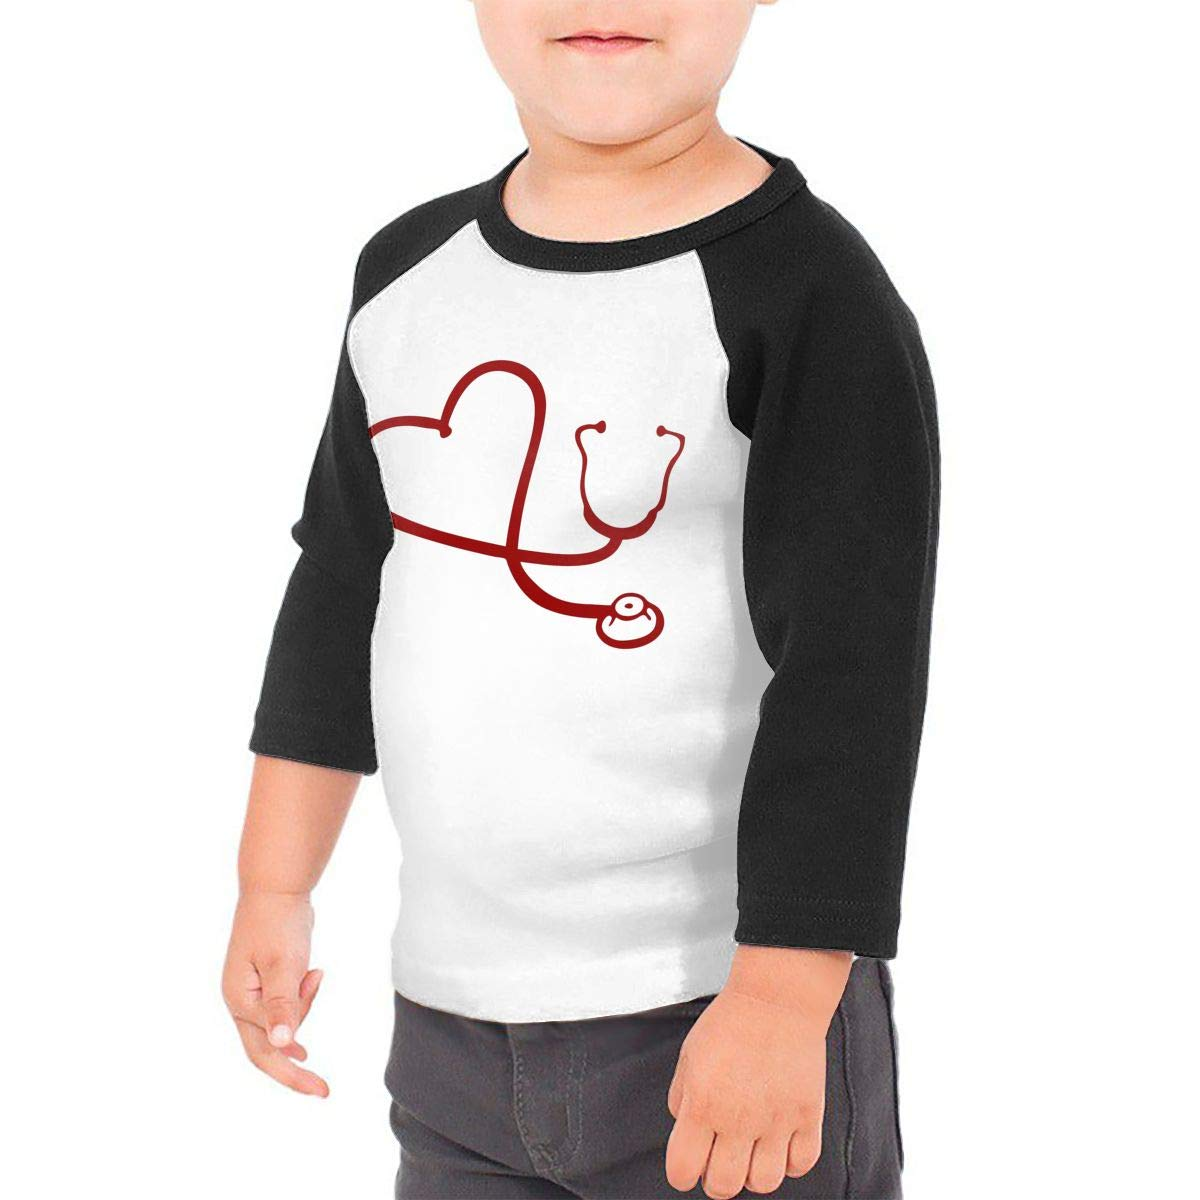 Yimo Heart Stethoscope Unisex Toddler Baseball Jersey Contrast 3//4 Sleeves Tee